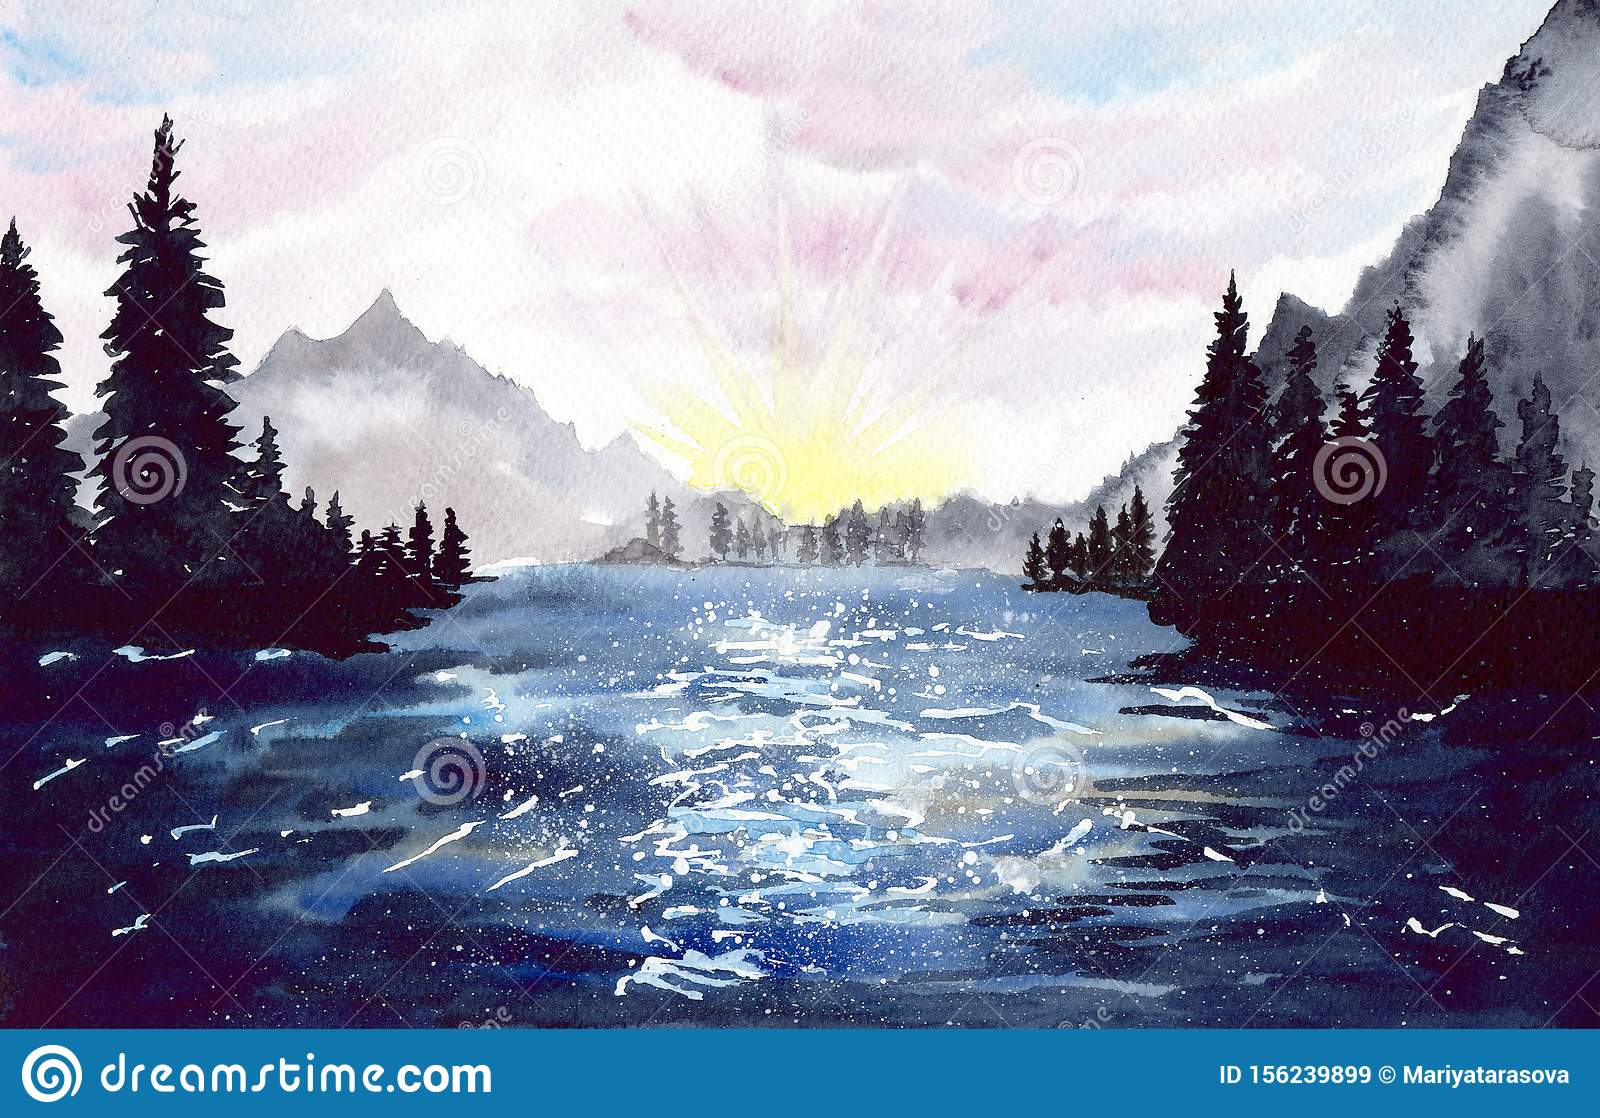 watercolor landscape with mountains and forest at dawn stock illustration illustration of reflection firs 156239899 https www dreamstime com watercolor landscape mountains forest dawn watercolor picture landscape mountains forest tall firs image156239899